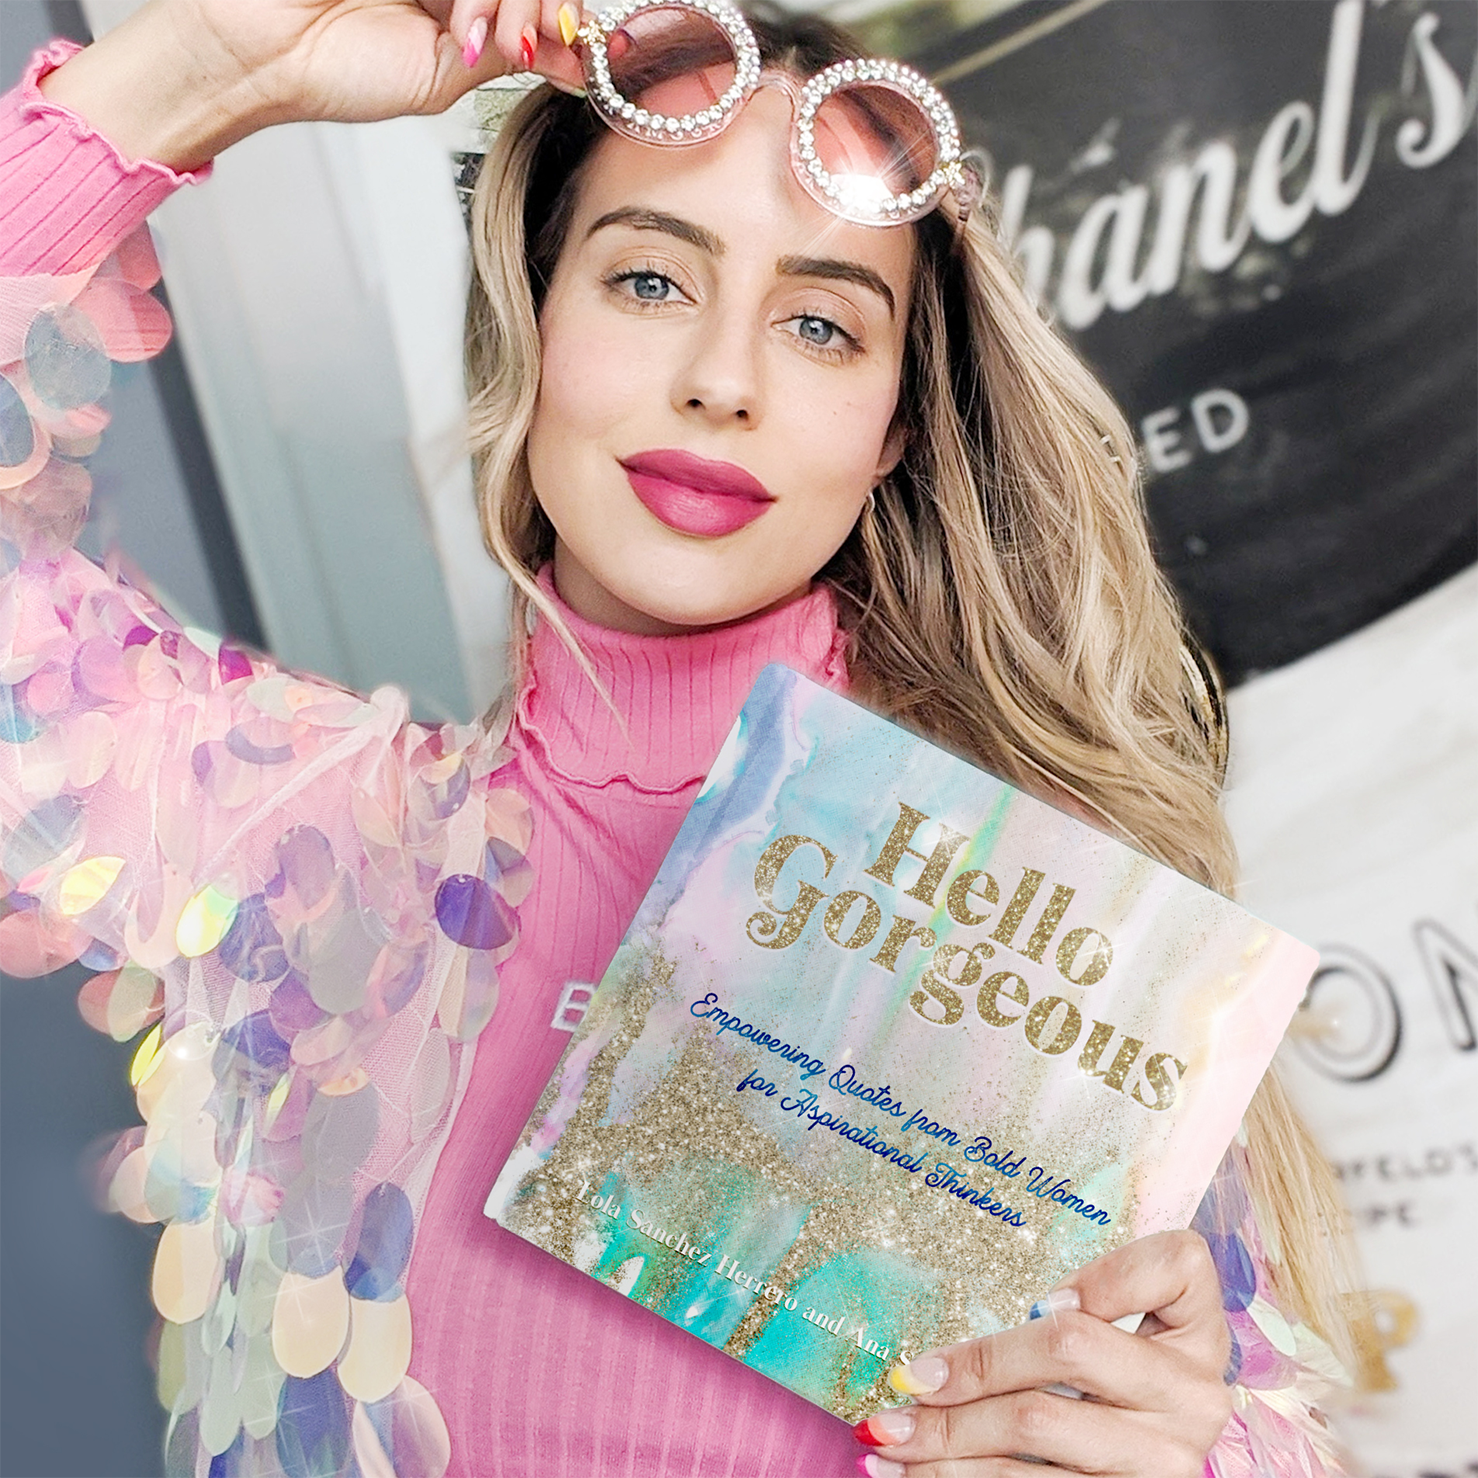 Image of founder and author Lola Sanchez showcasing her new book Hello Gorgeous.